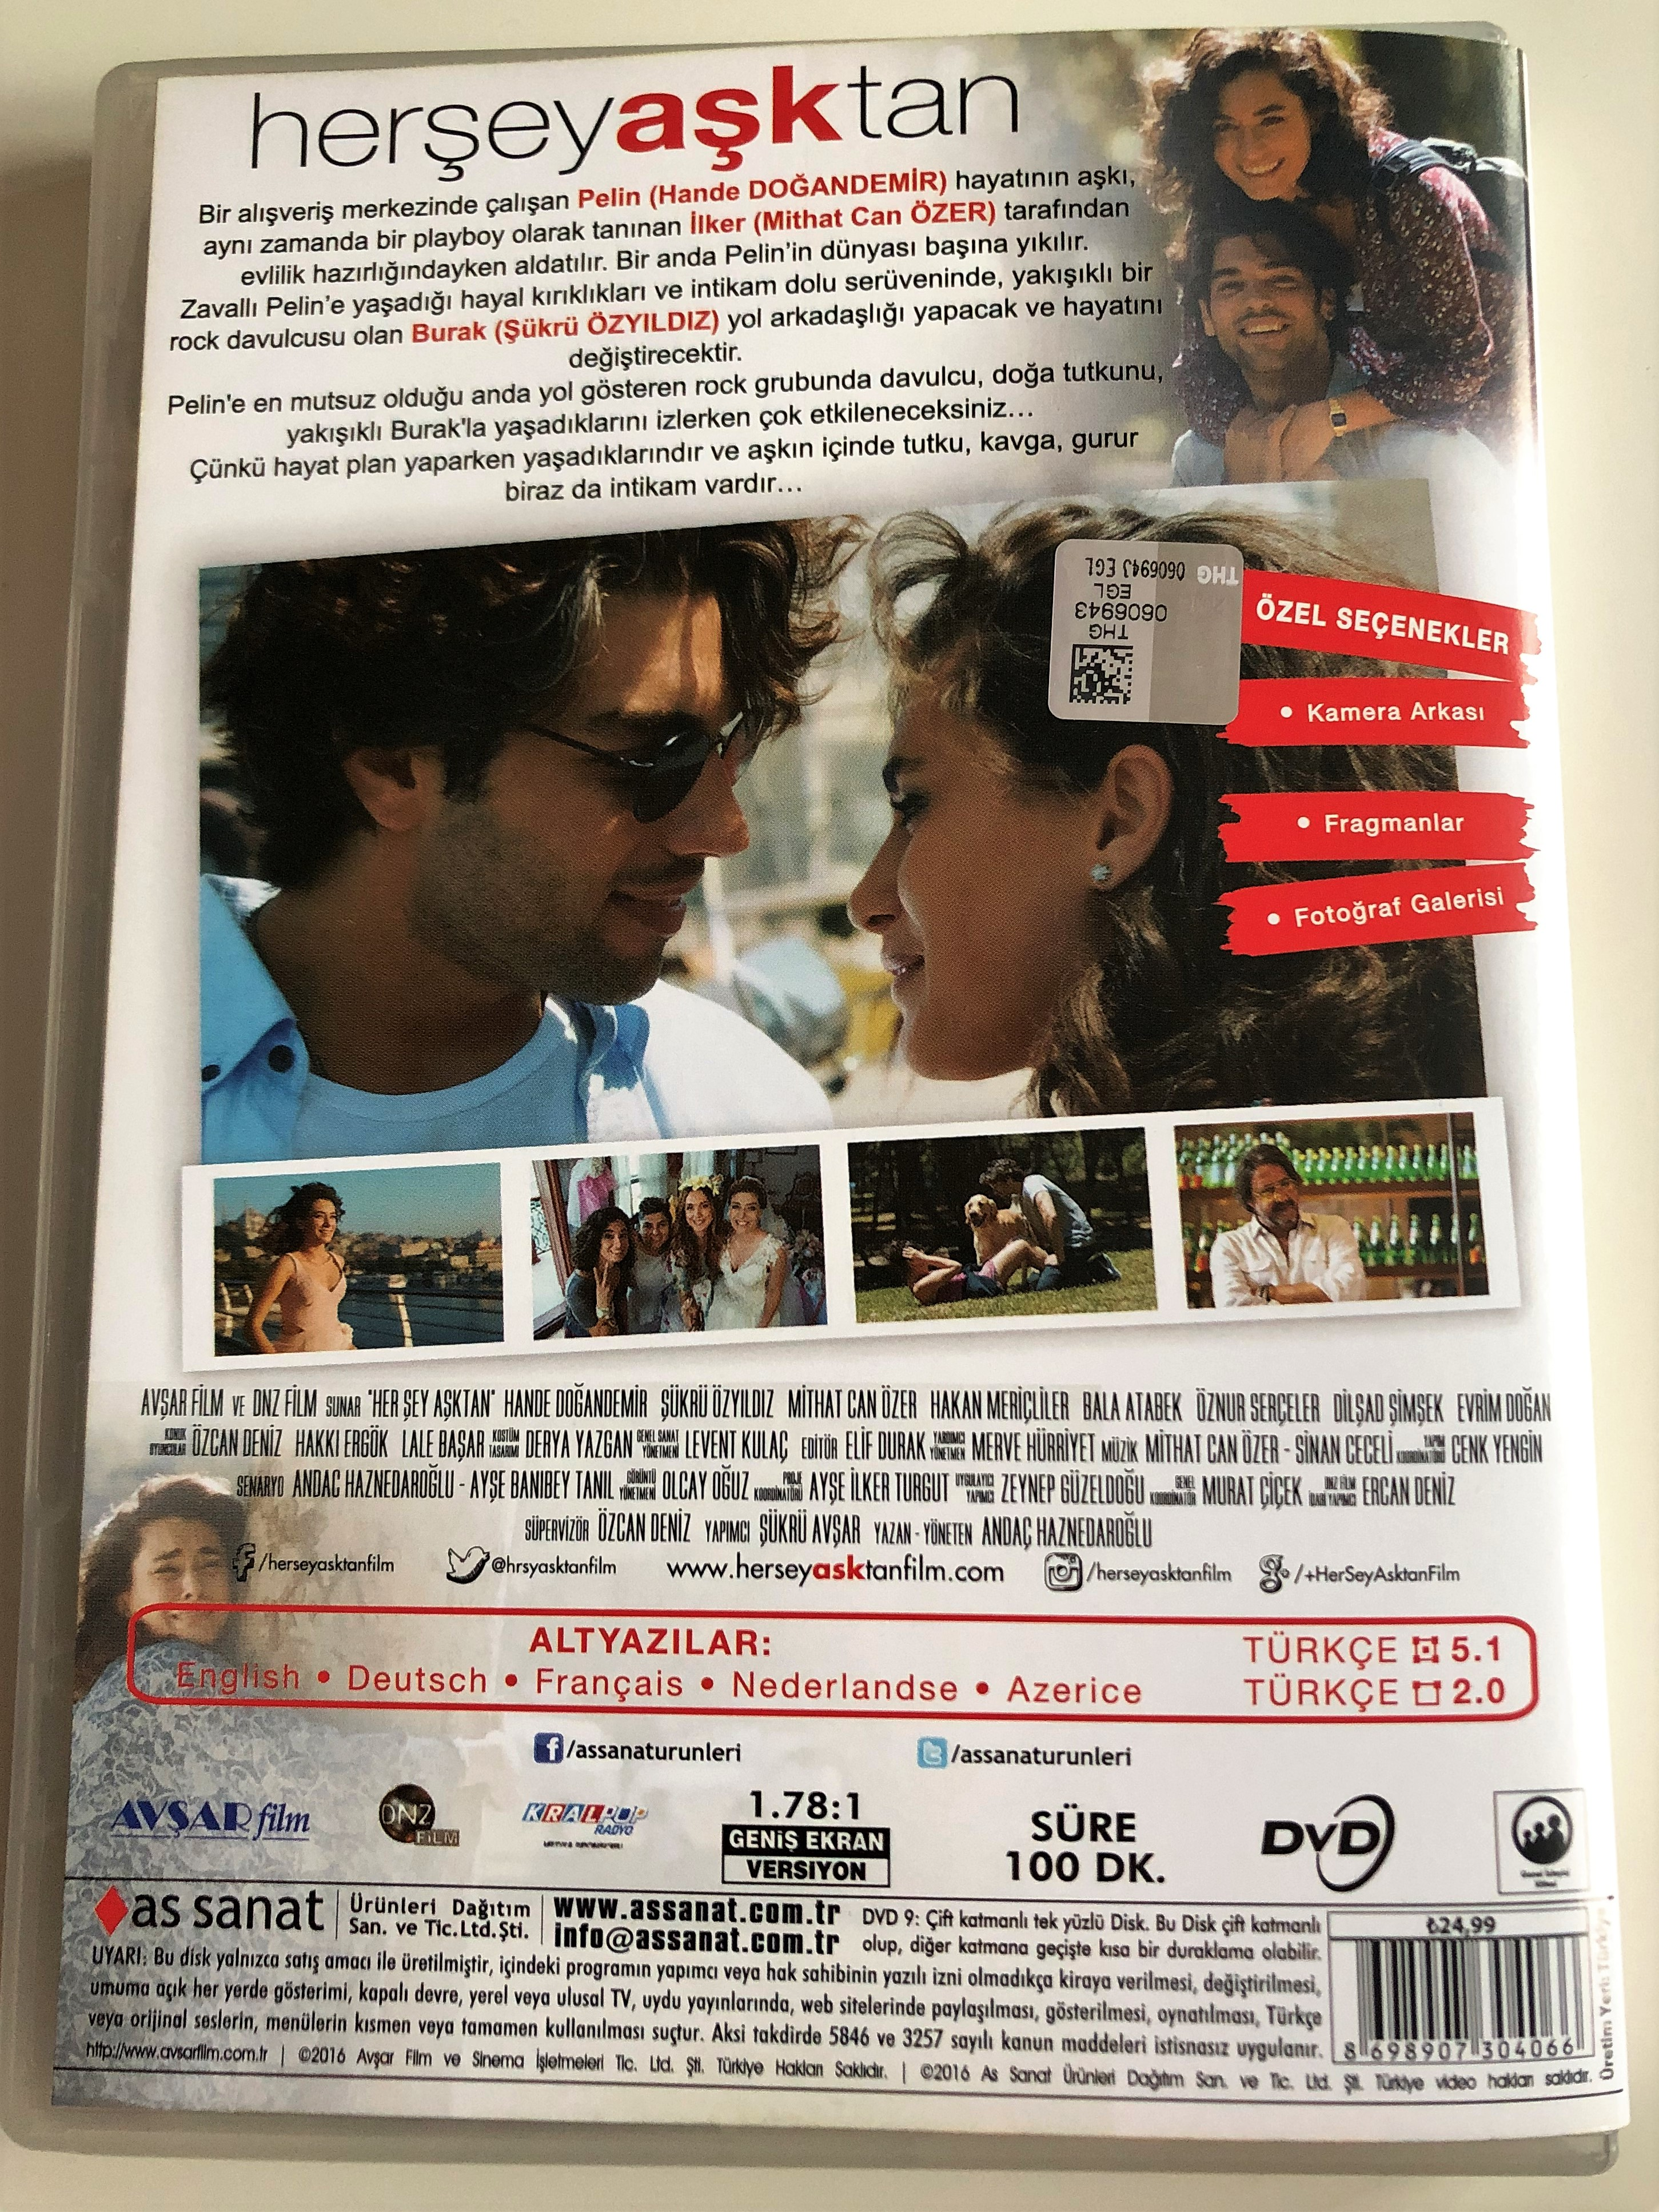 her-ey-a-ktan-dvd-2016-everything-is-love-directed-by-anda-haznedaro-lu-starring-hande-do-andemir-kr-zy-ld-z-mithat-can-zer-2-.jpg